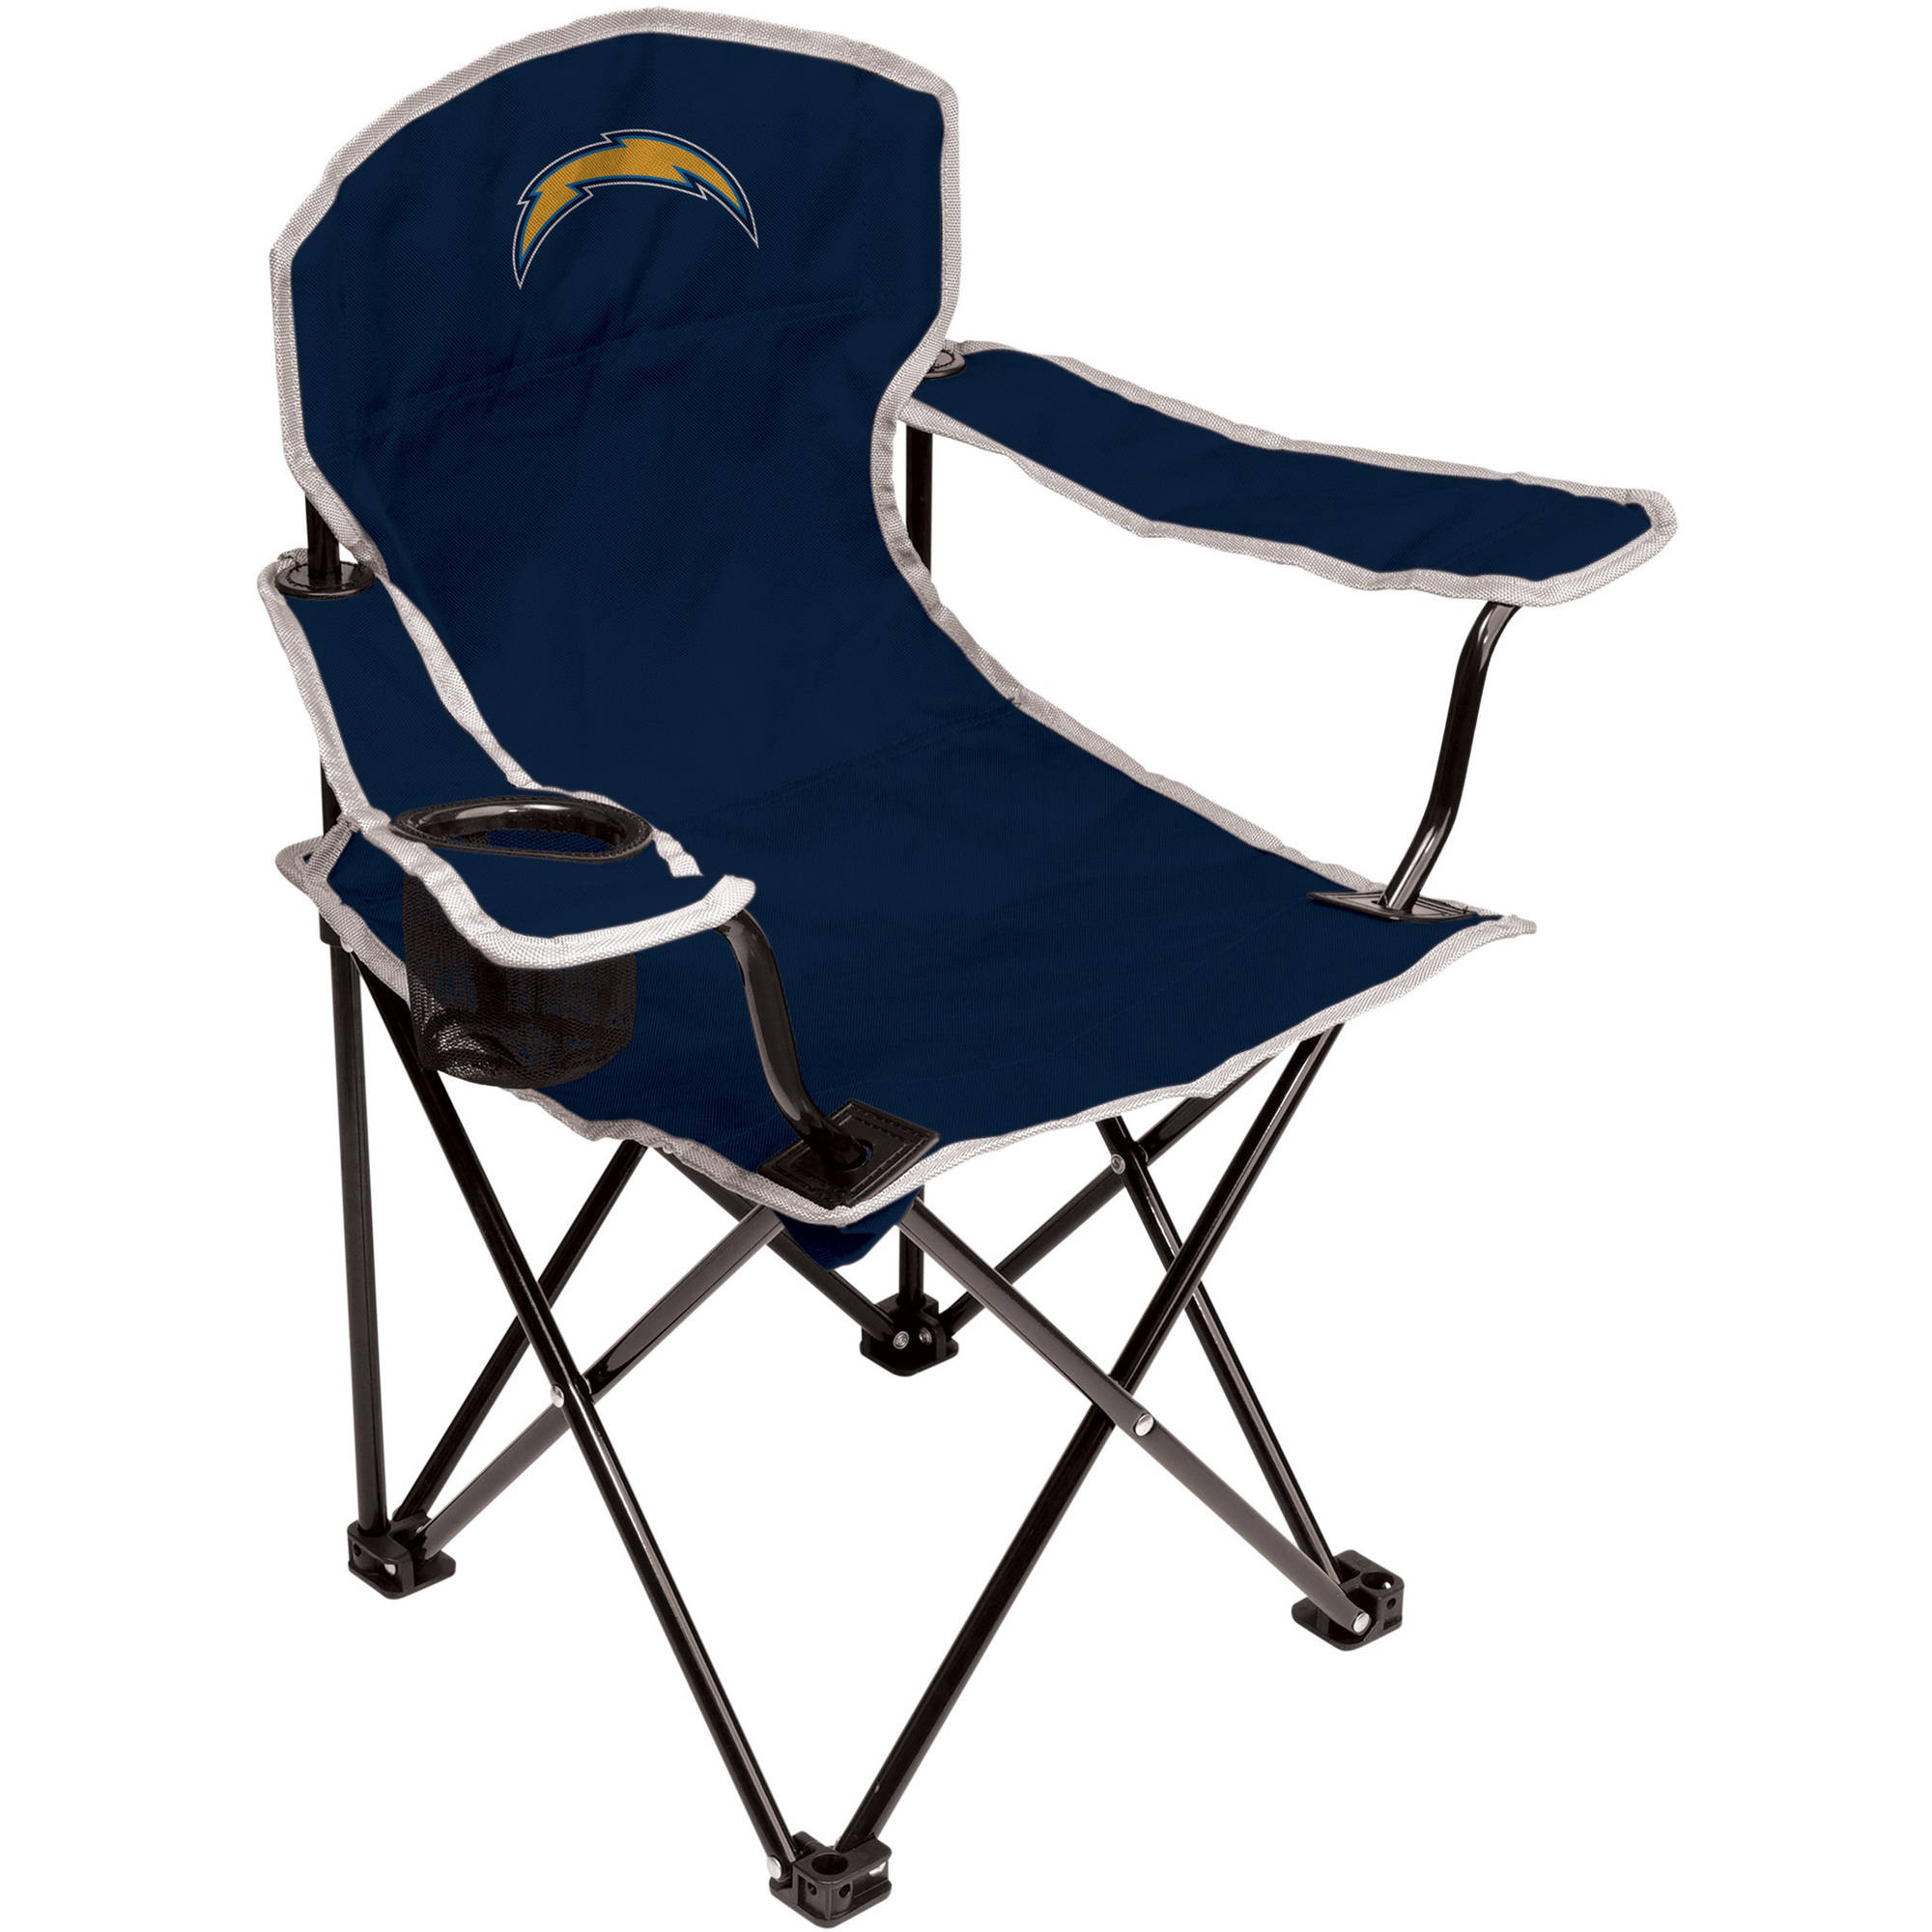 NFL San Diego Chargers Youth Size Tailgate Chair from Coleman by Rawlings